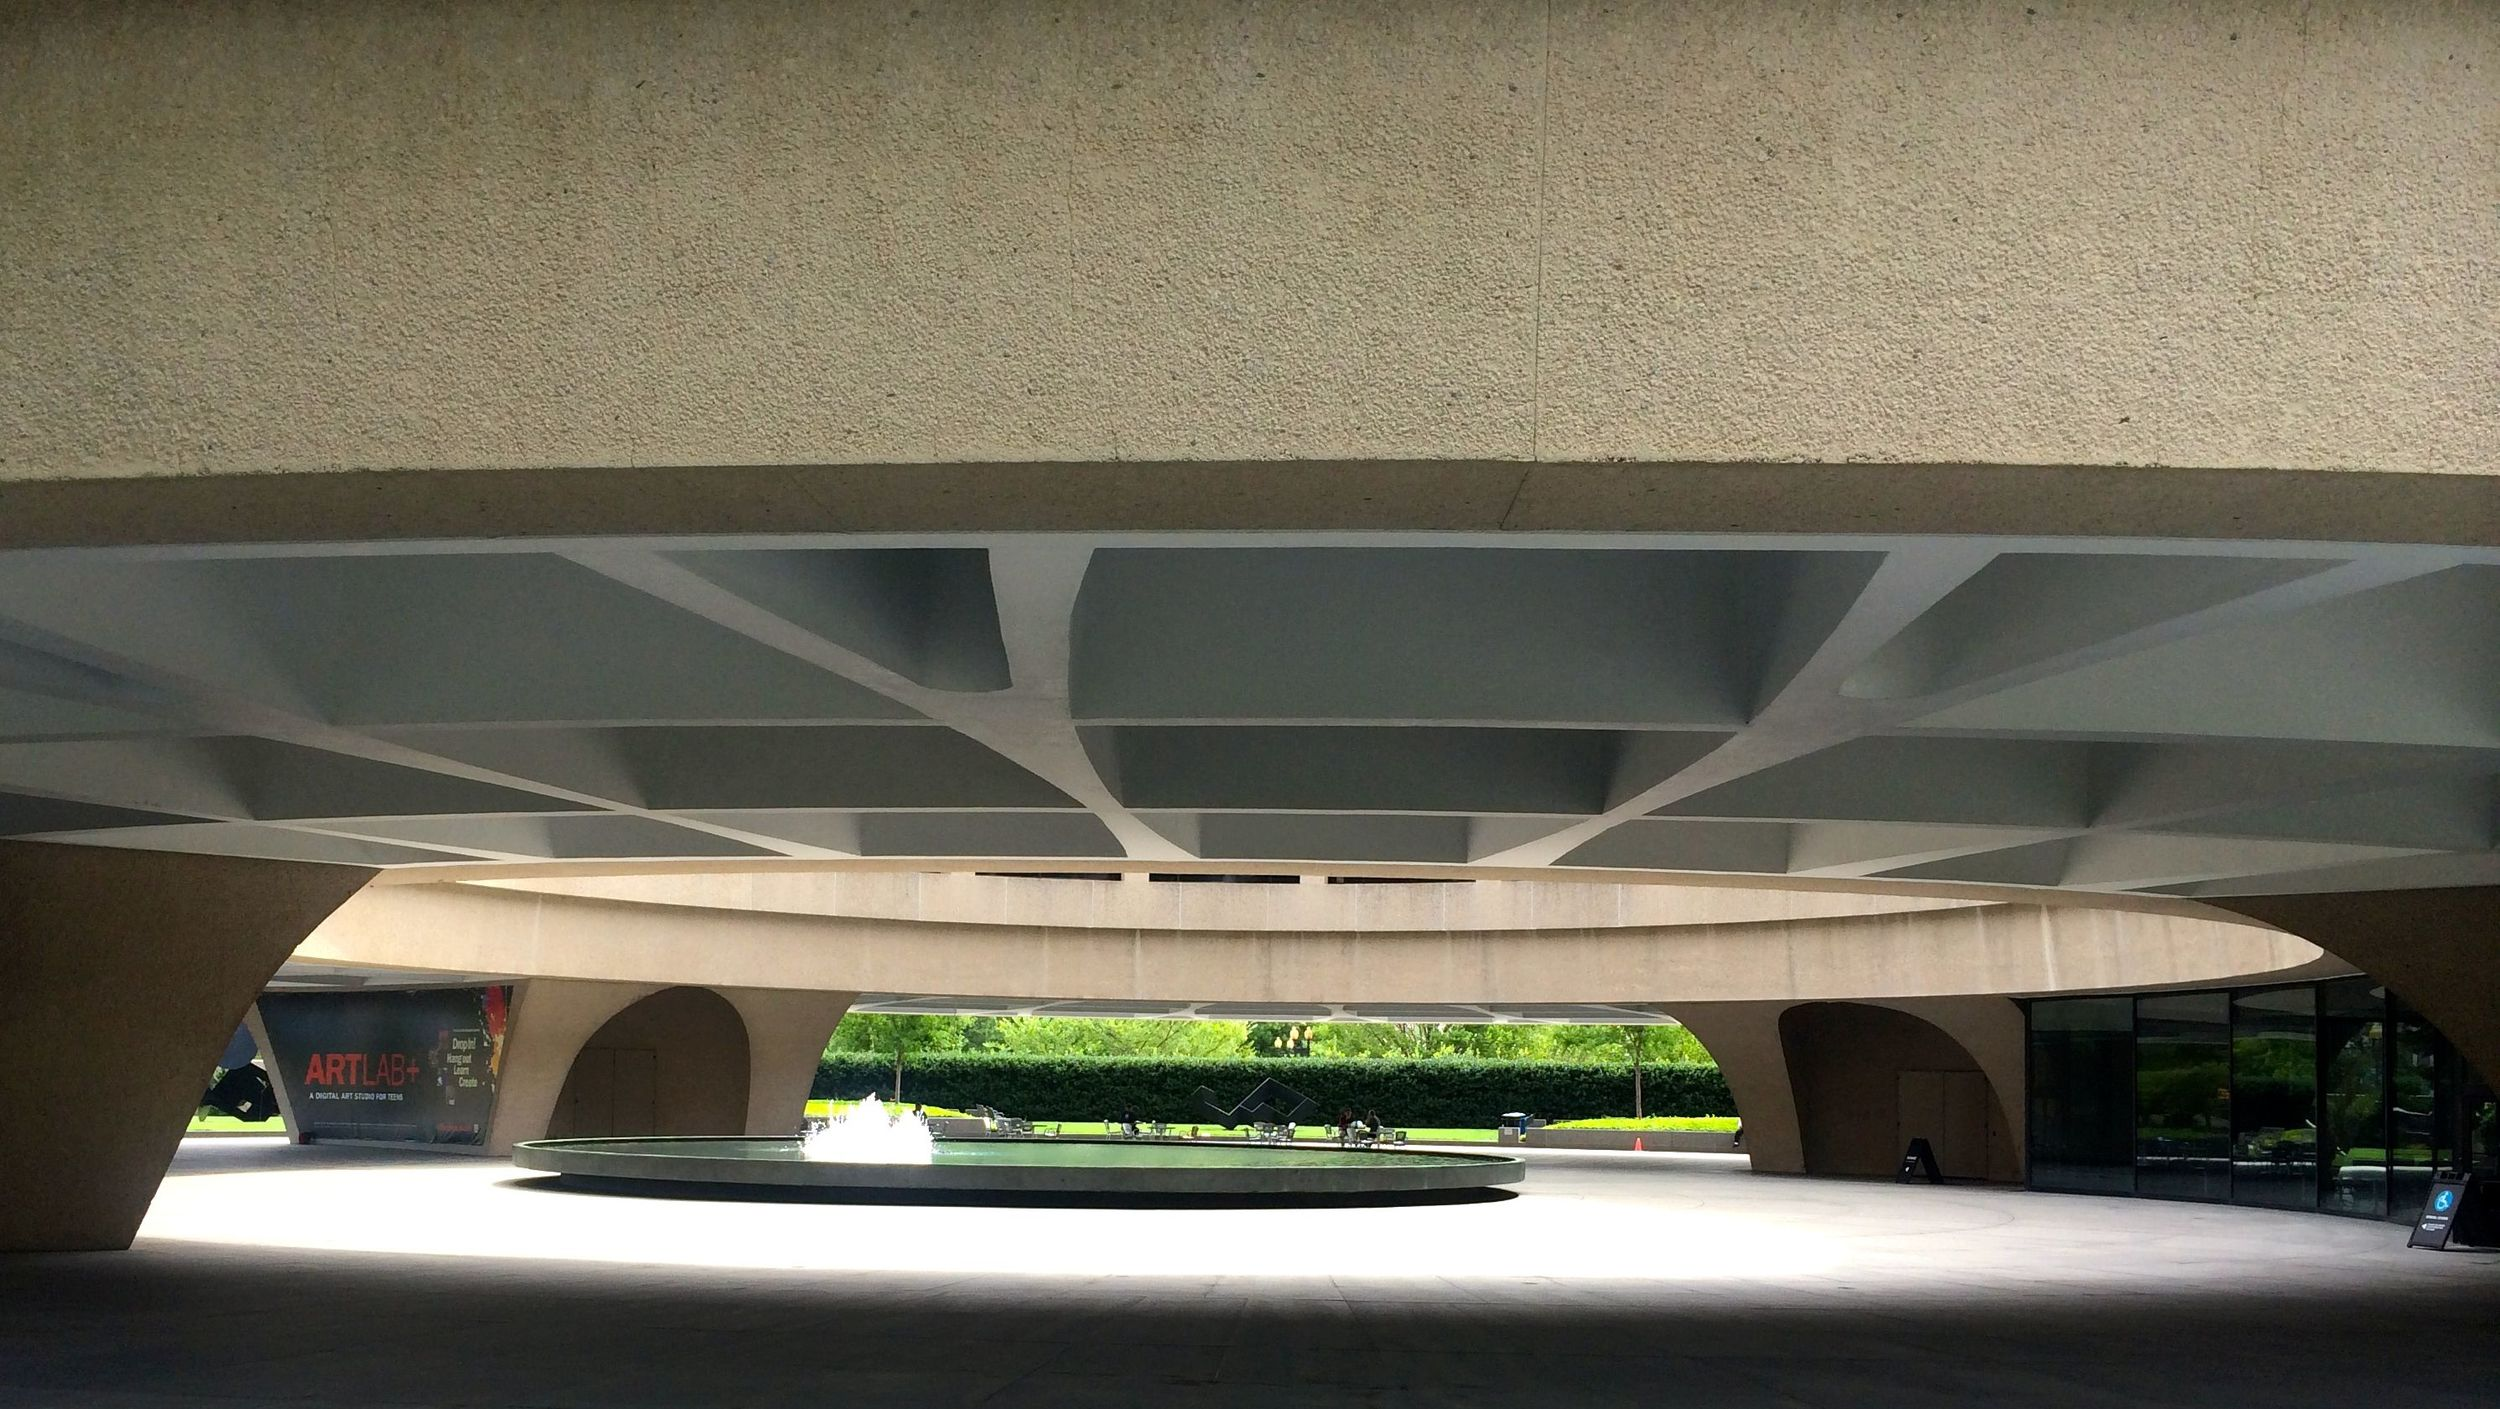 The Under Belly of the Hirshhorn.